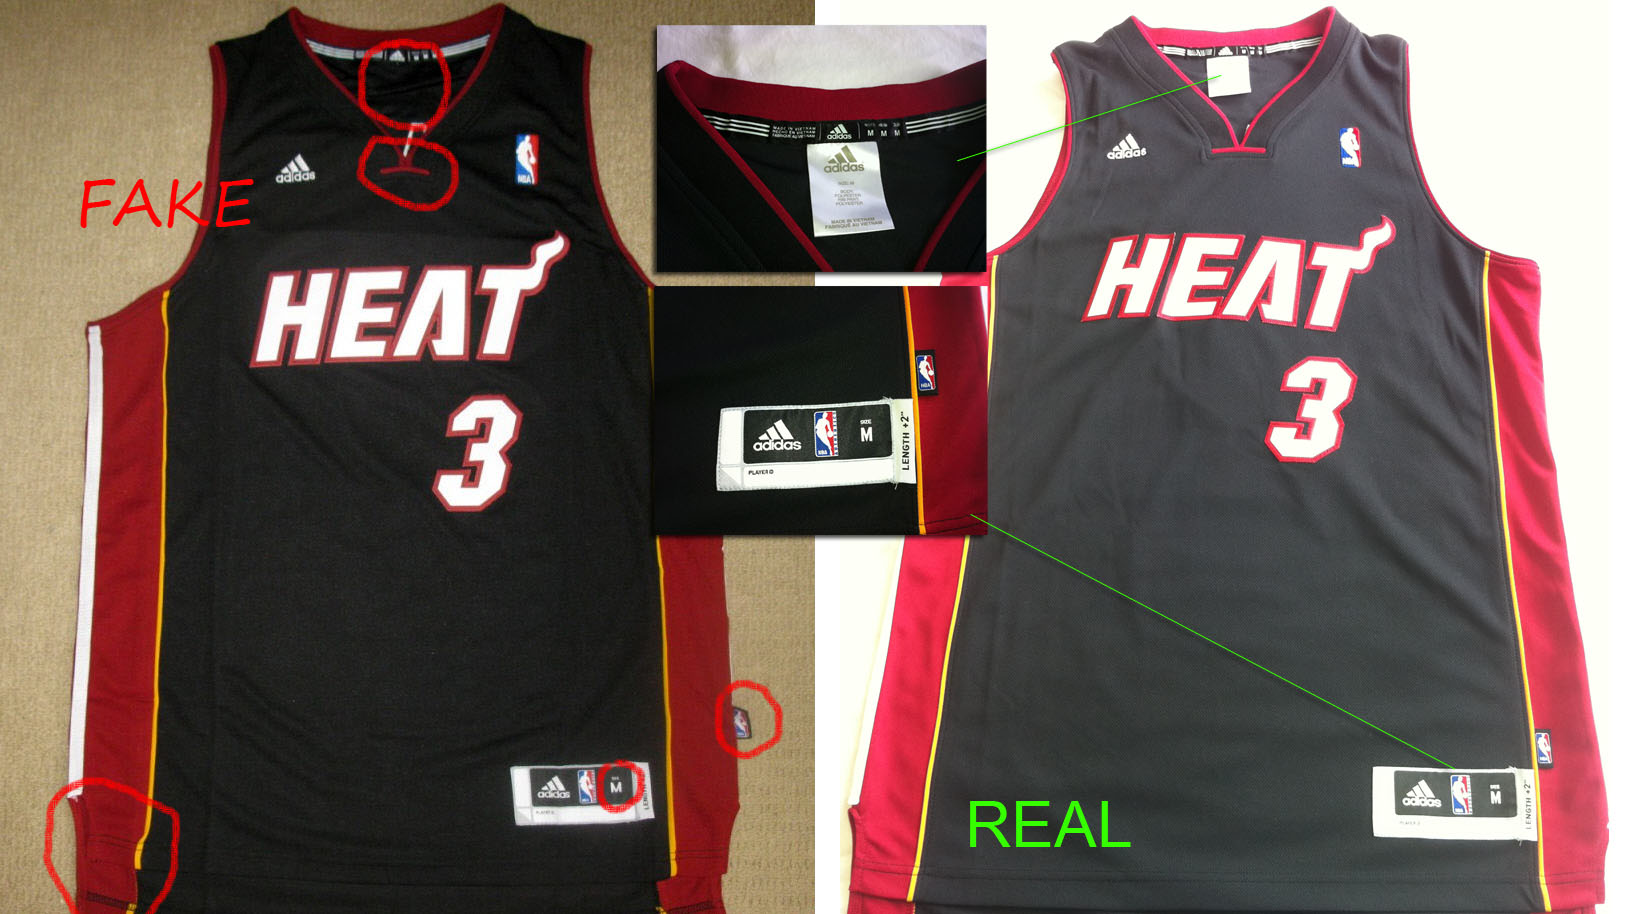 5a15a7bff35 How to spot fake NBA swingman Jerseys (On ebay/trademe/anywhere ...